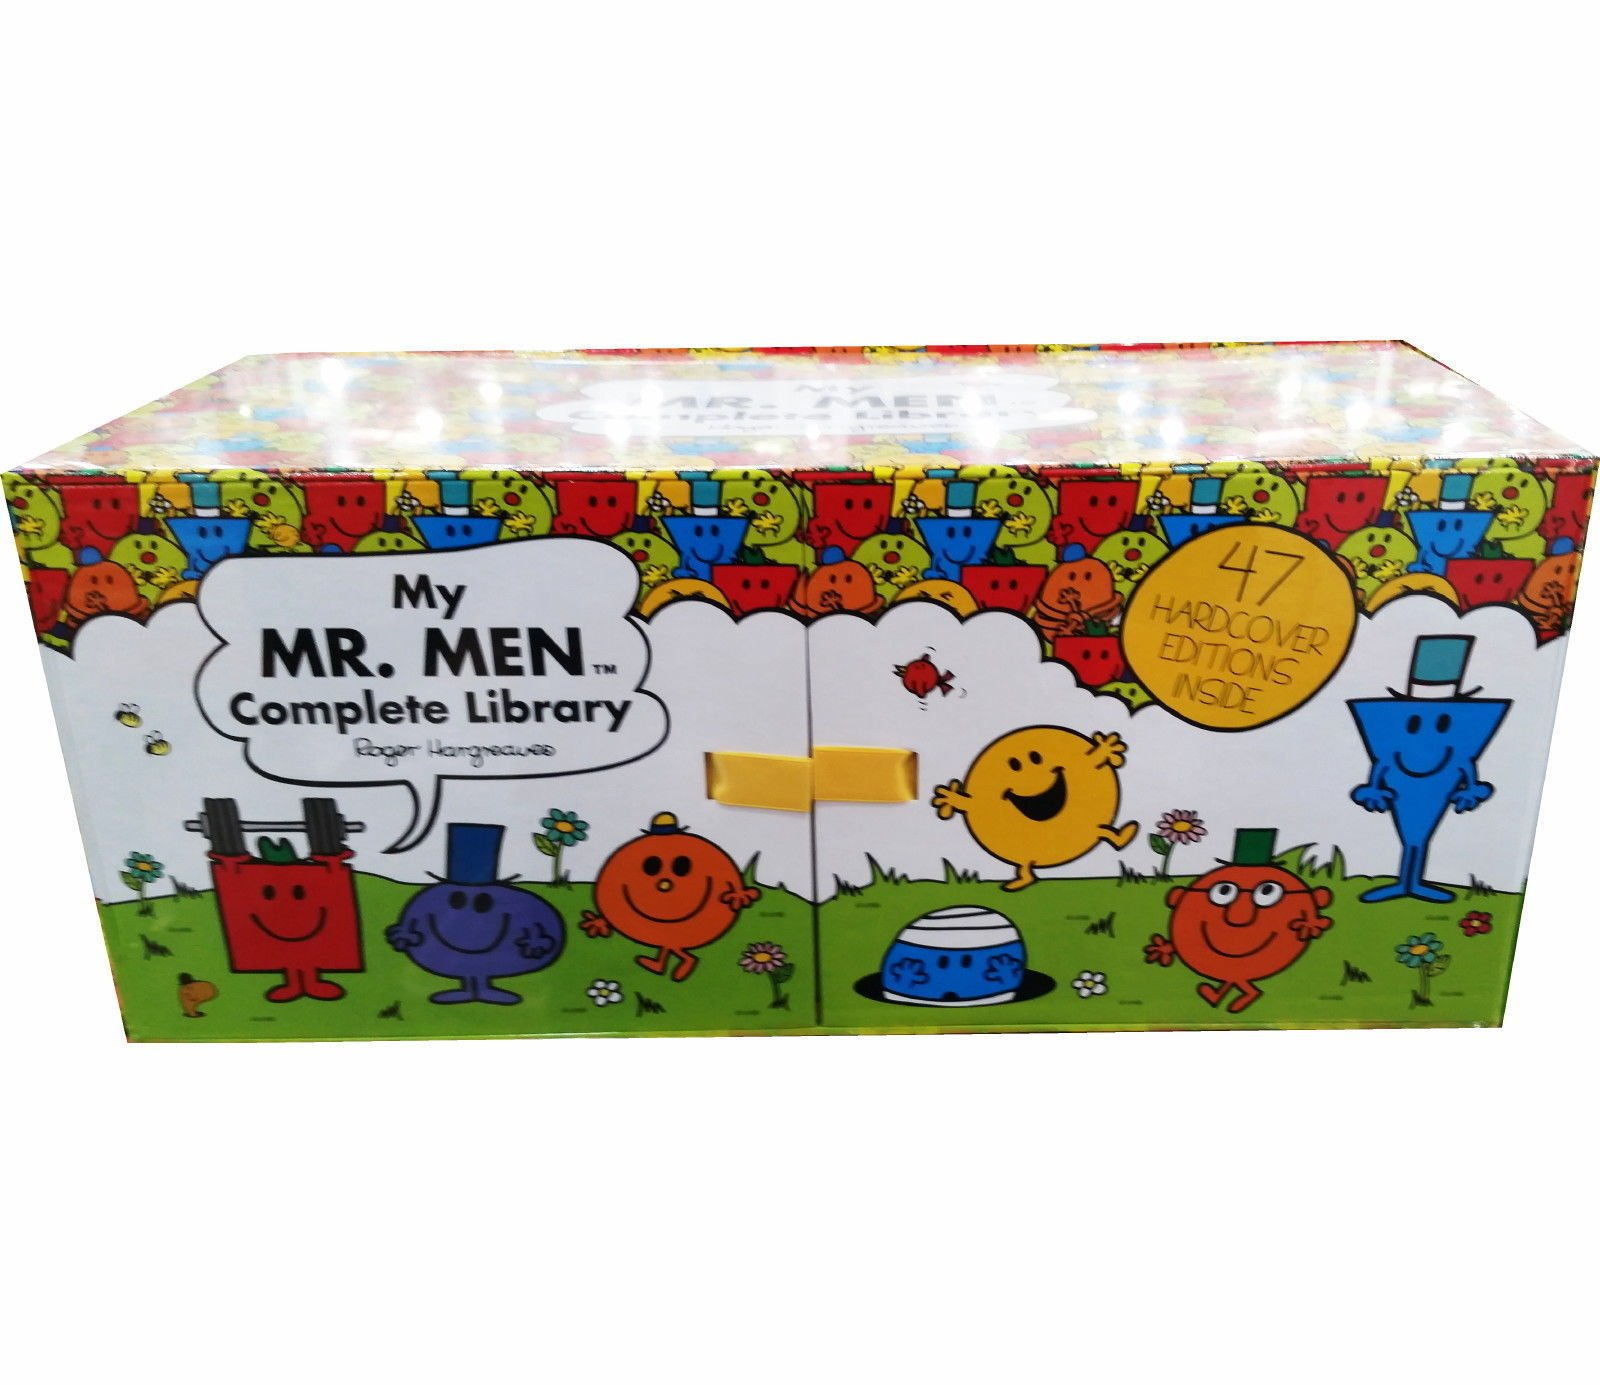 My Complete Library Mr Men 47 Books Complete Box Set Story Collection Hard CoverRoger Hargreaves